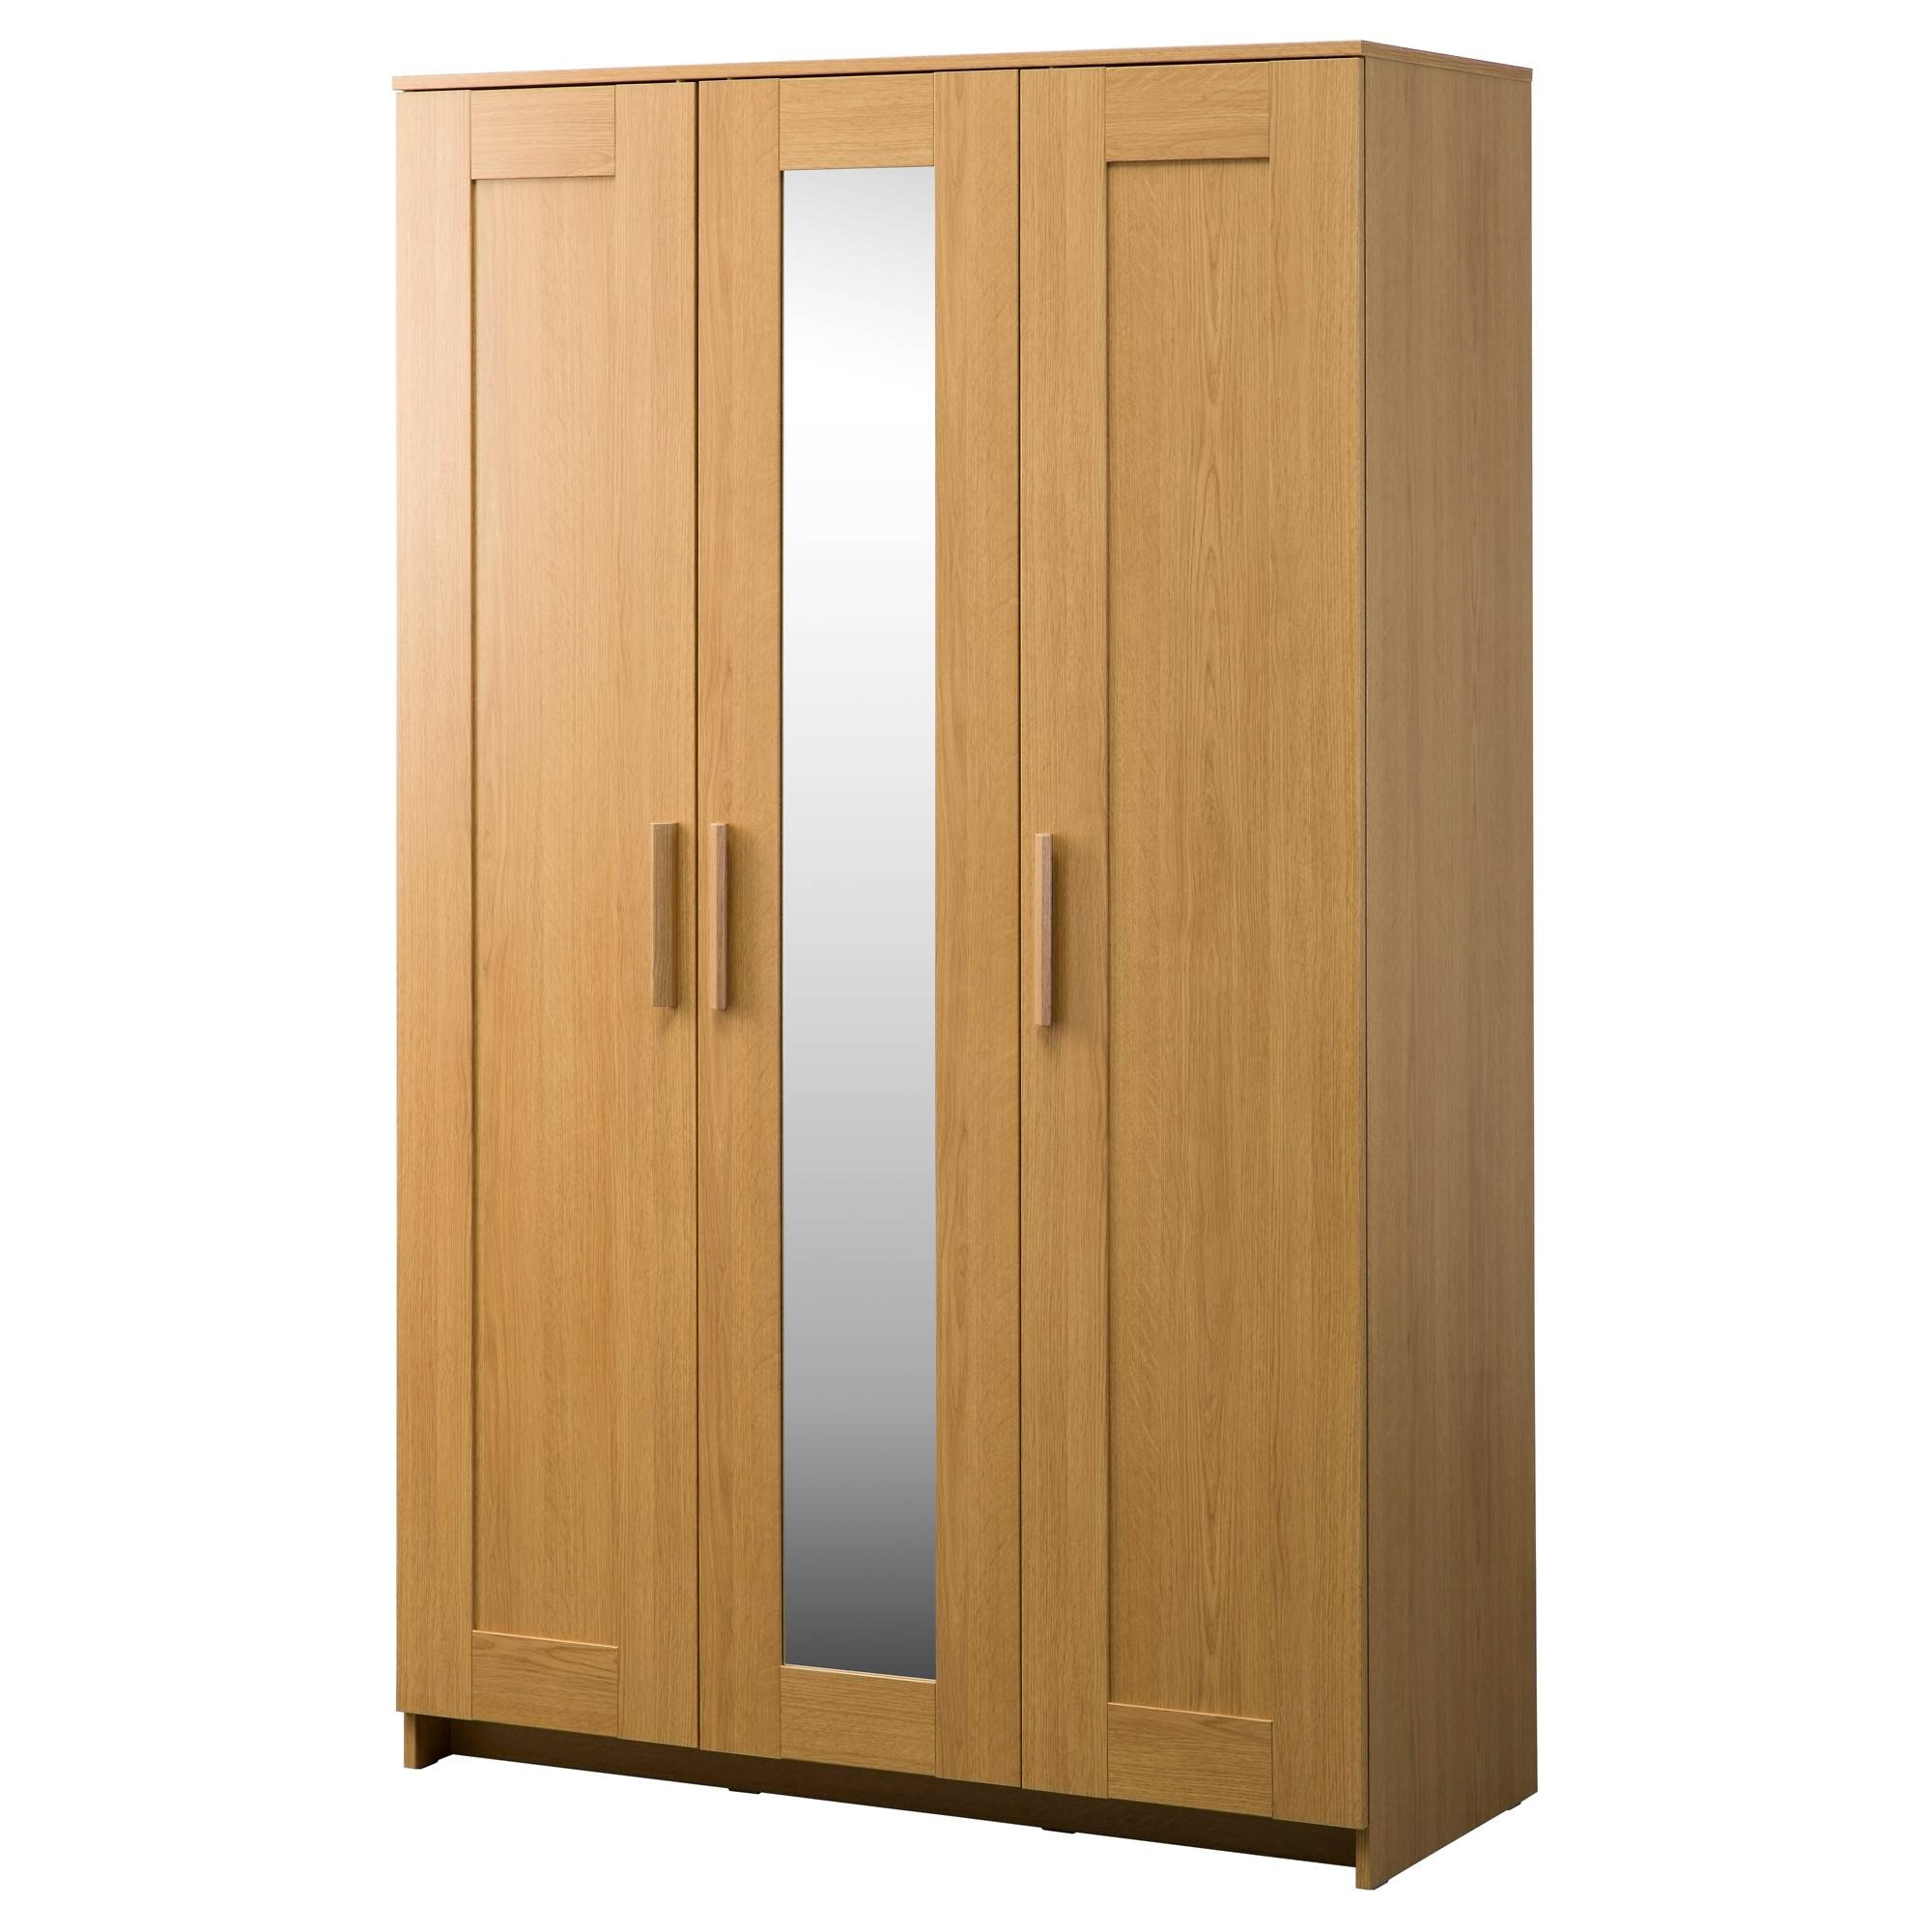 Wardrobes | Ikea pertaining to Cheap Wardrobes (Image 15 of 15)